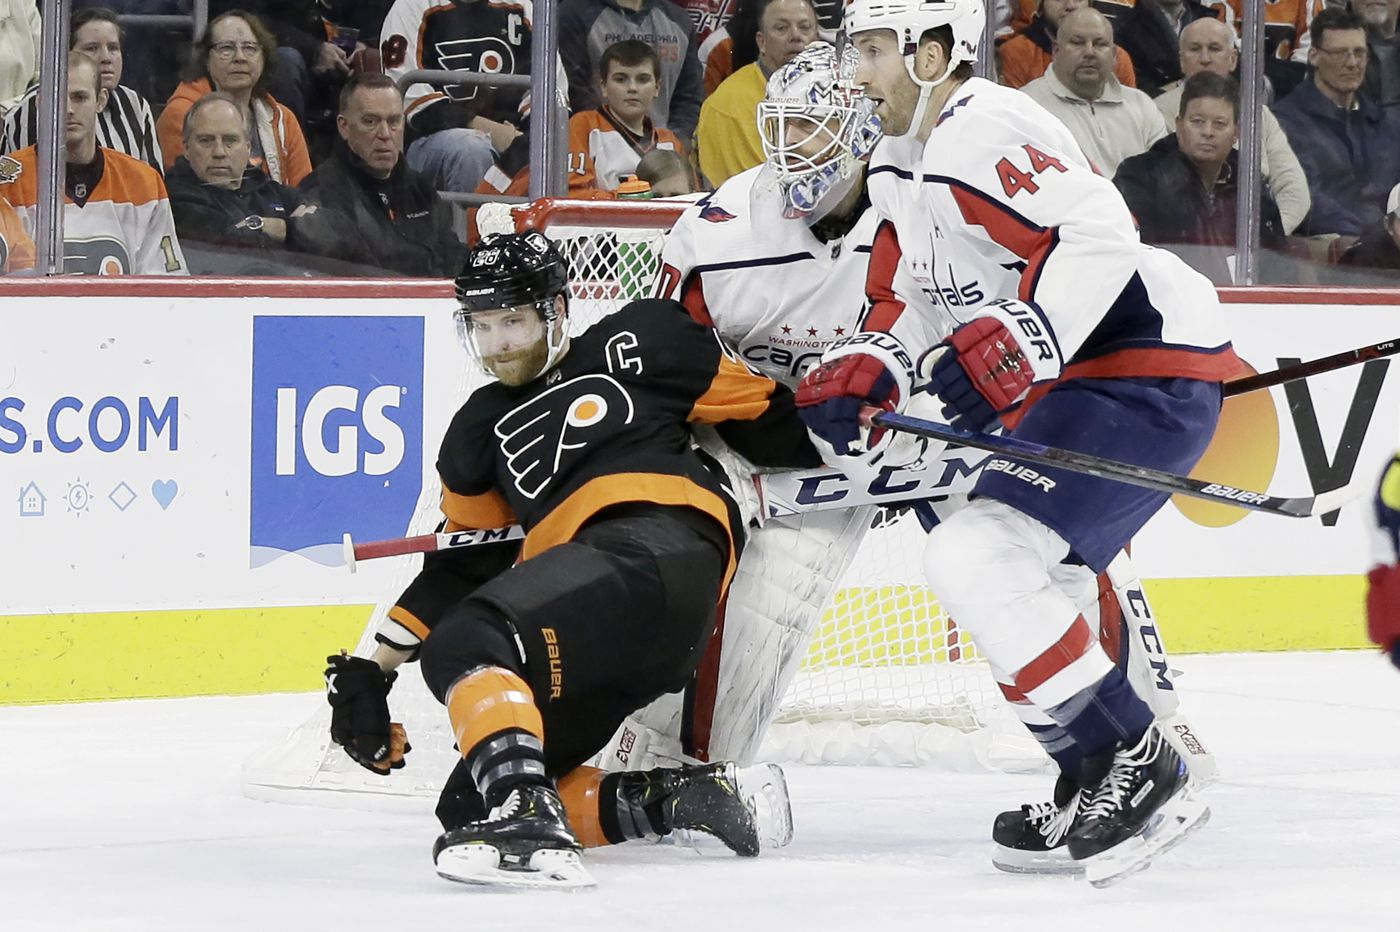 Capitals hold off late charge from shorthanded Flyers and win, 5-3